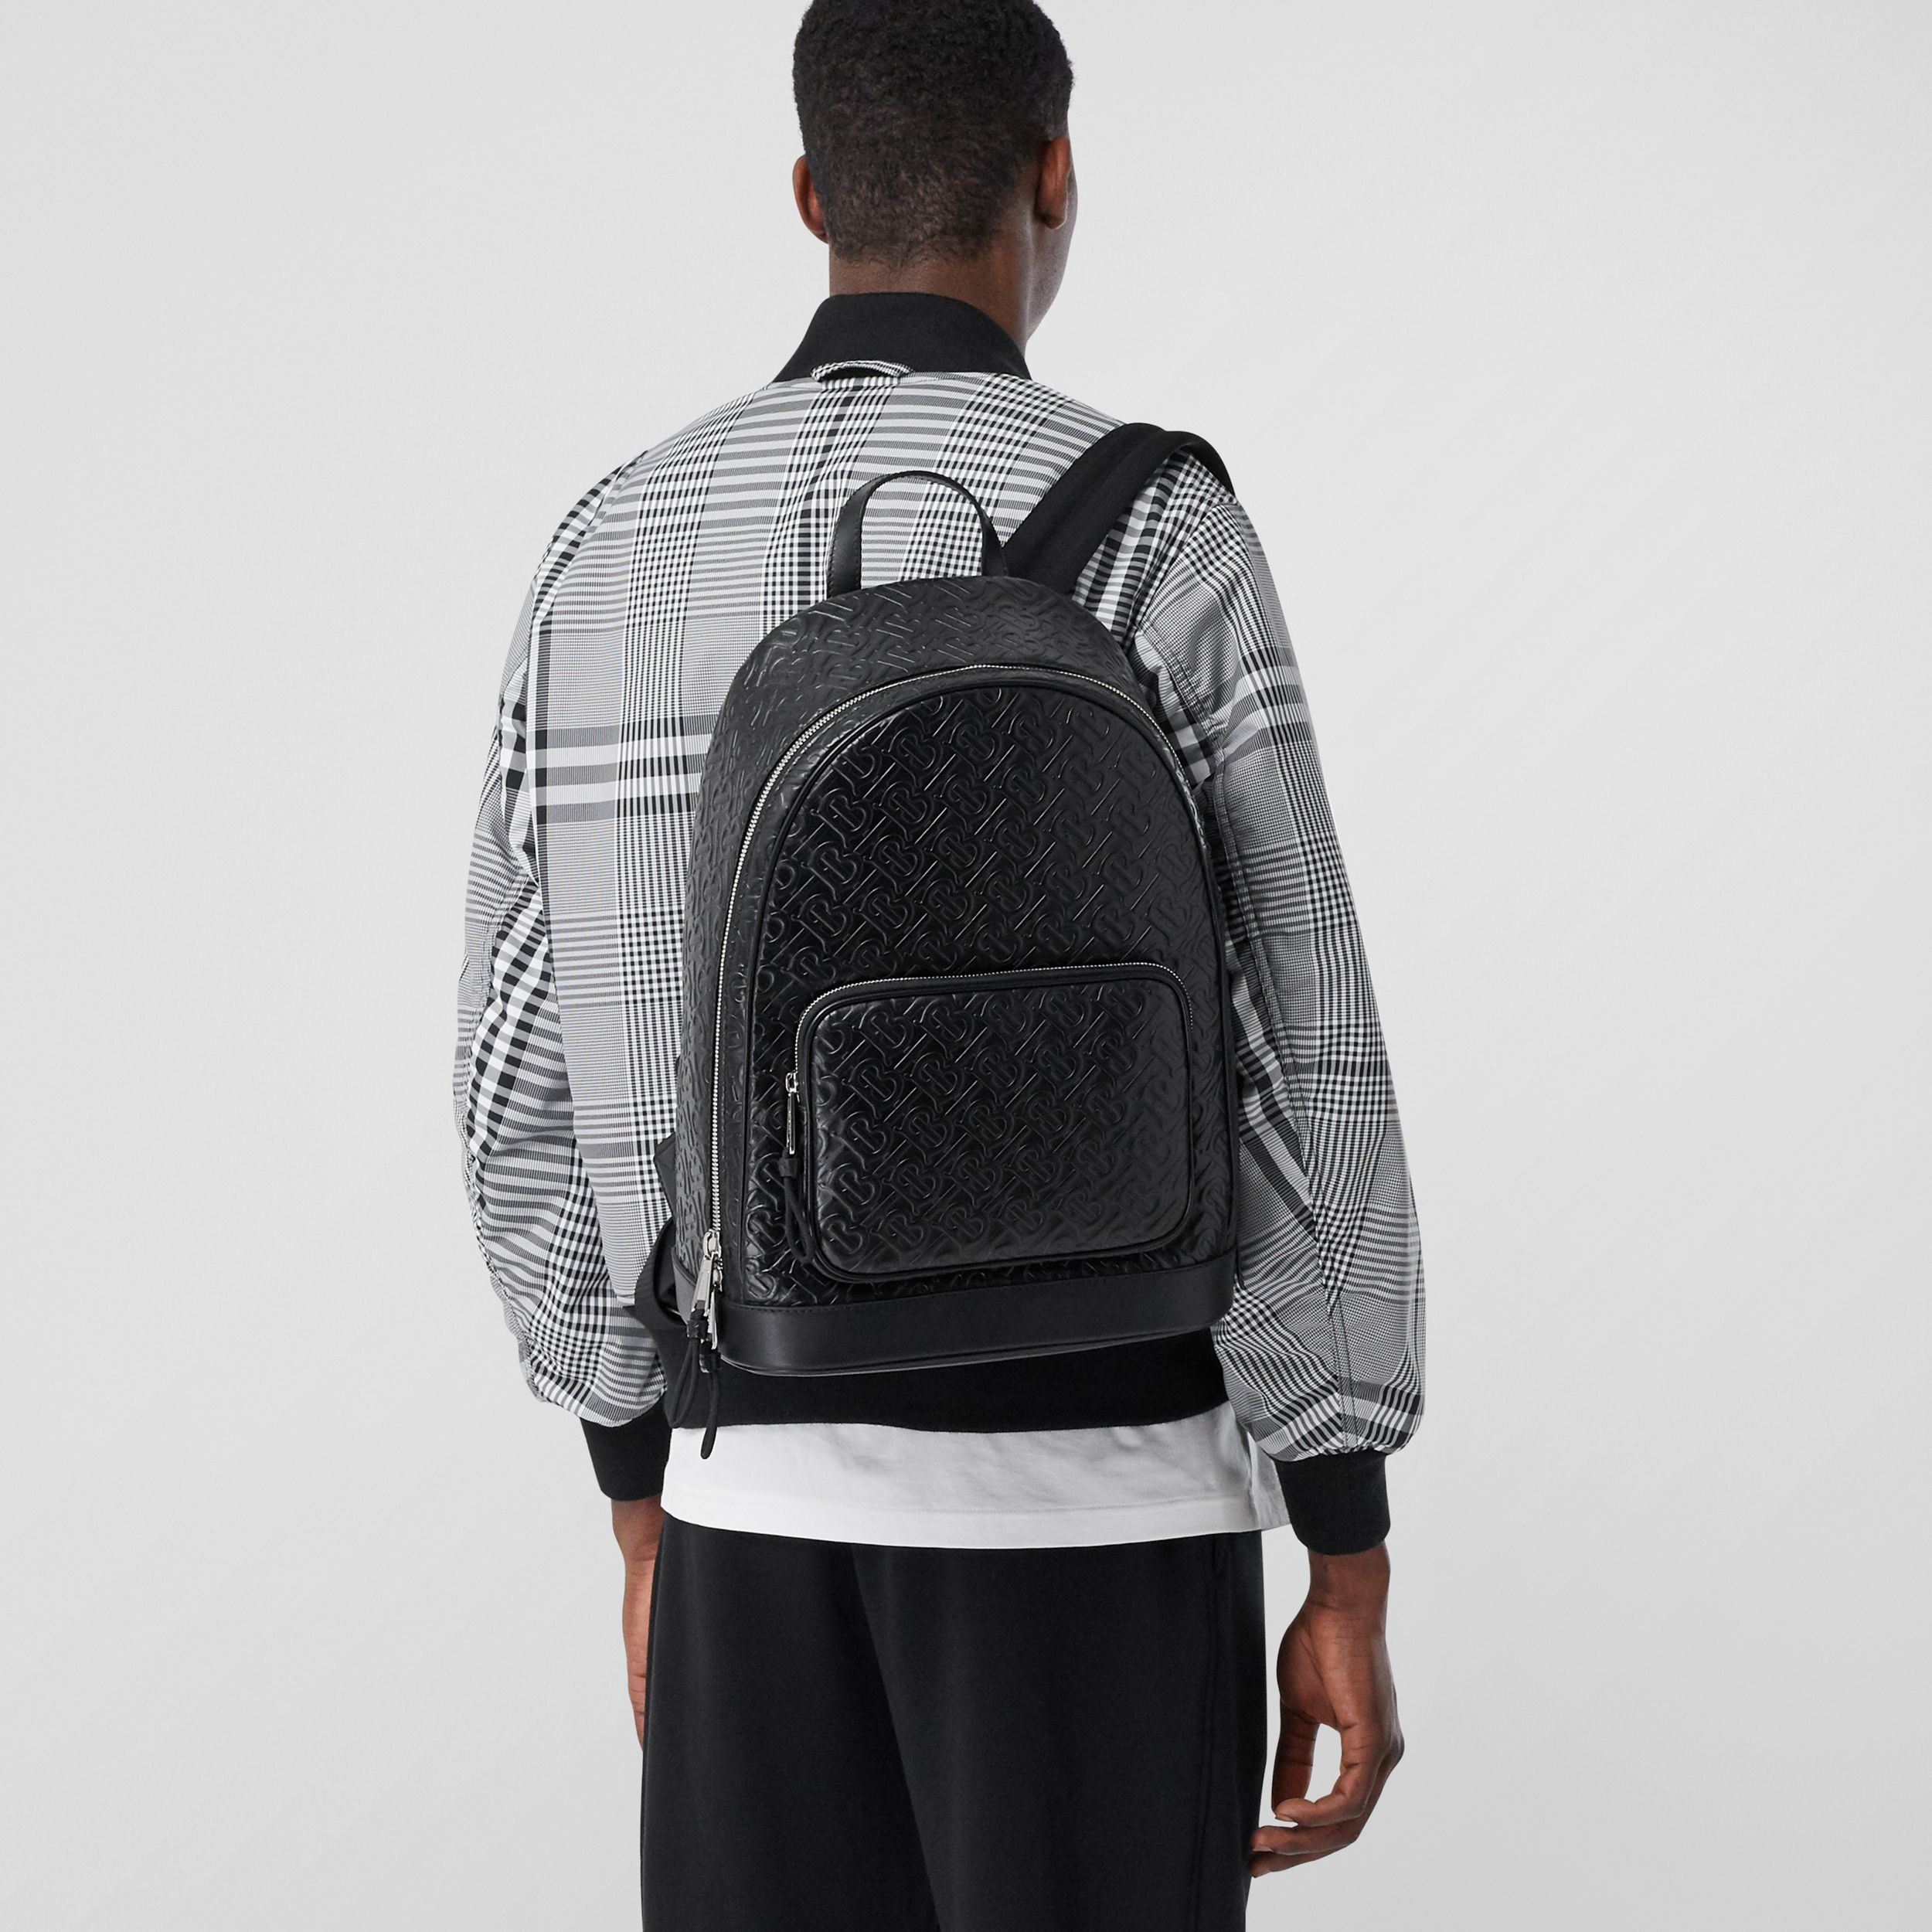 Monogram Leather Backpack in Black - Men | Burberry Canada - 3